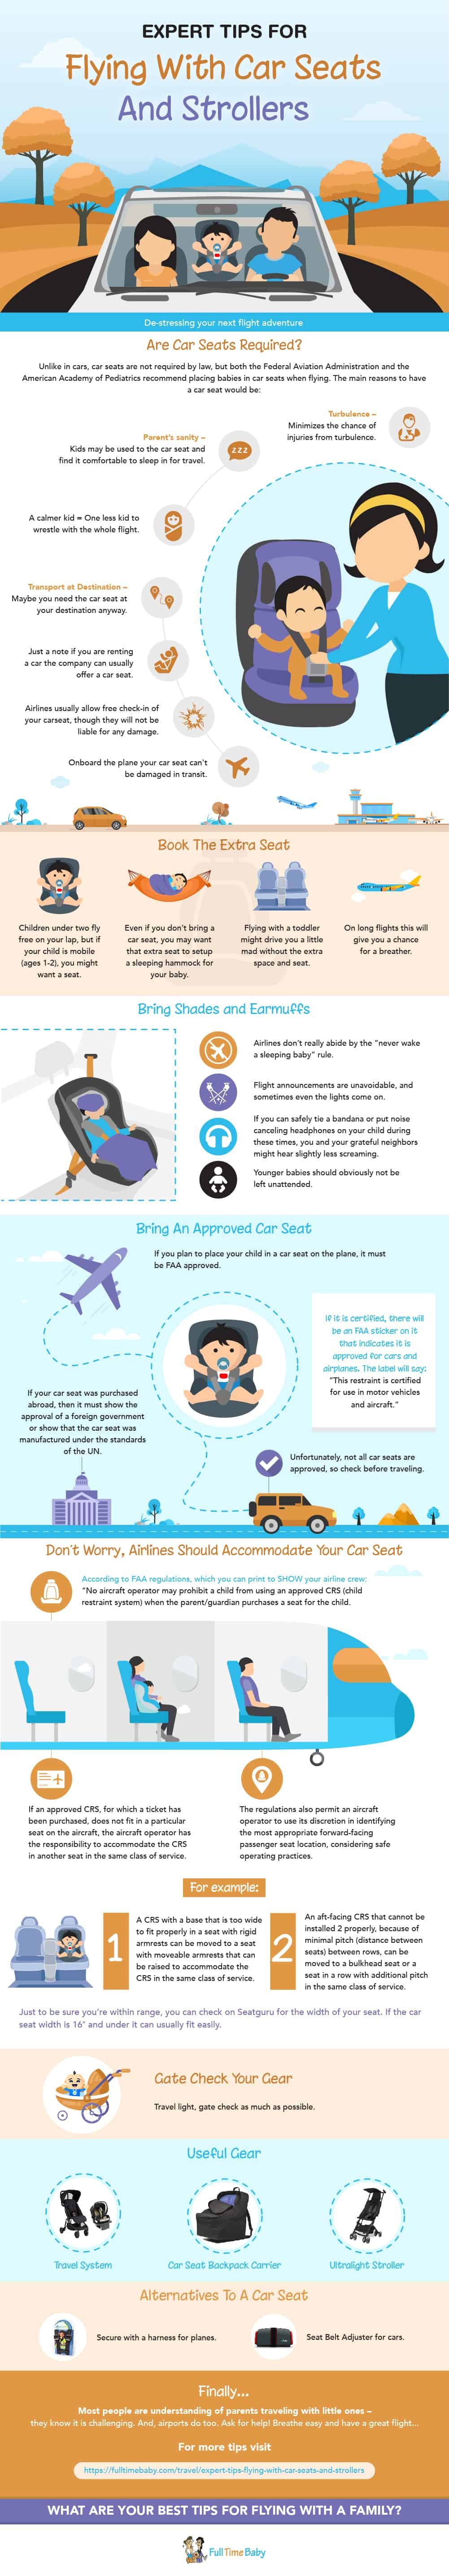 expert tips for flying with carseats and strollers infographic